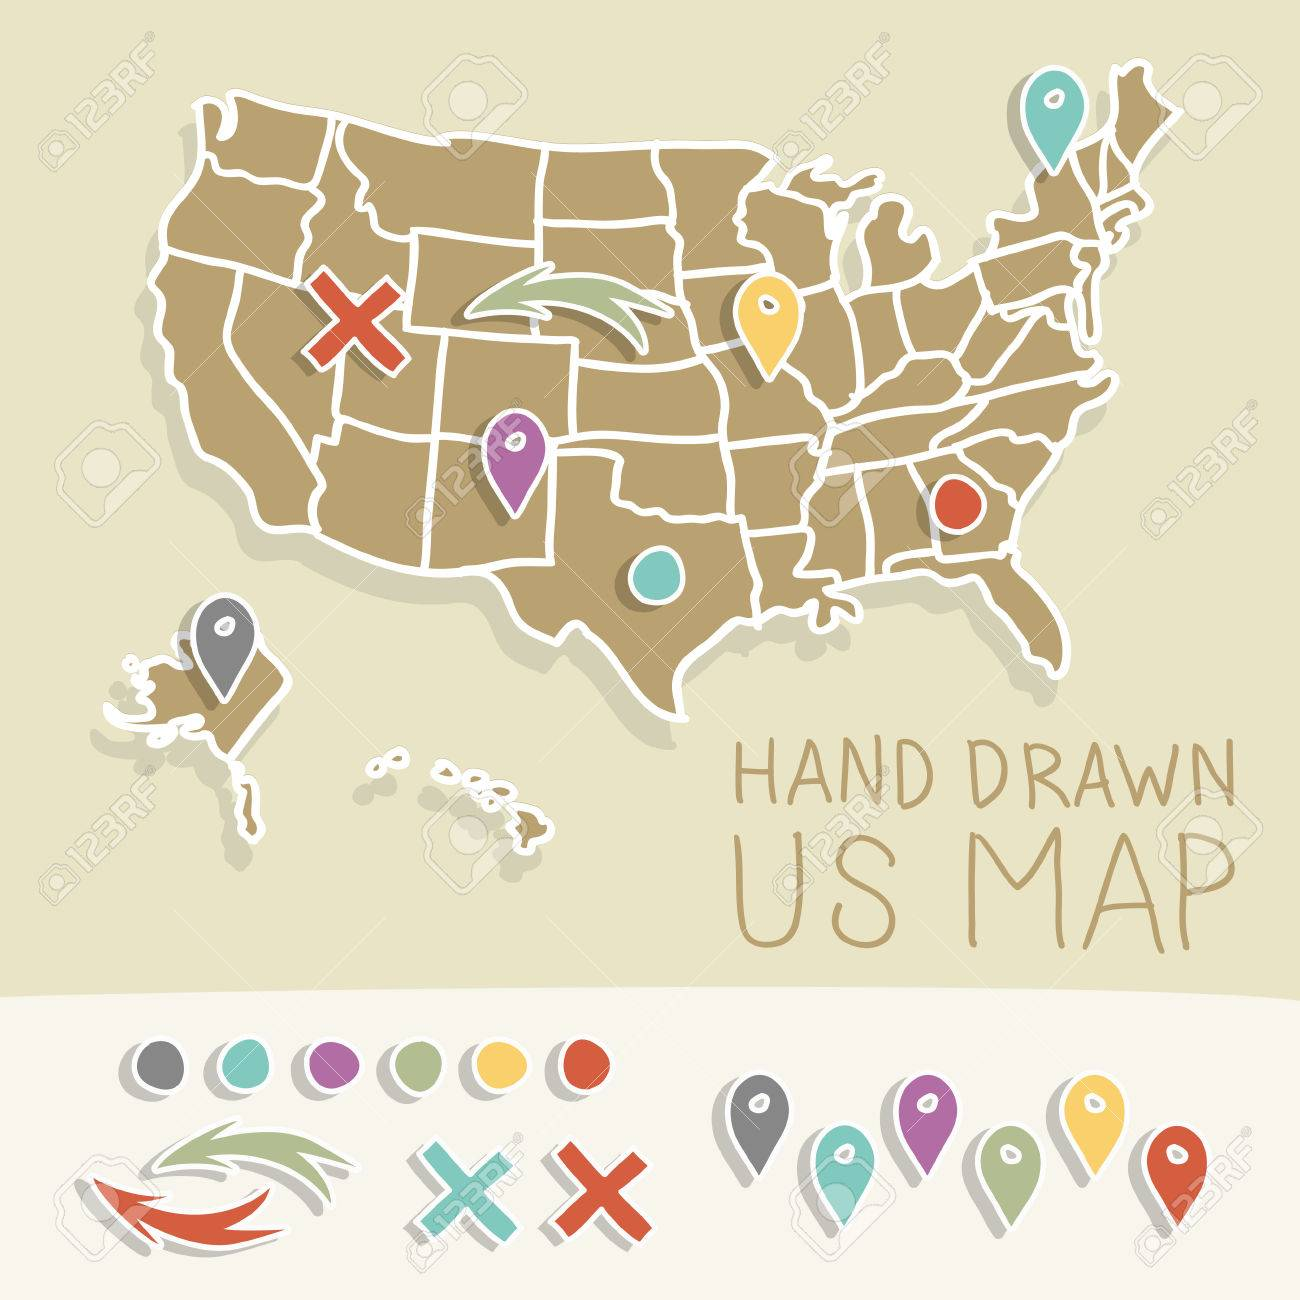 Vintage US Map Illustration Royalty Free Cliparts, Vectors, And ...